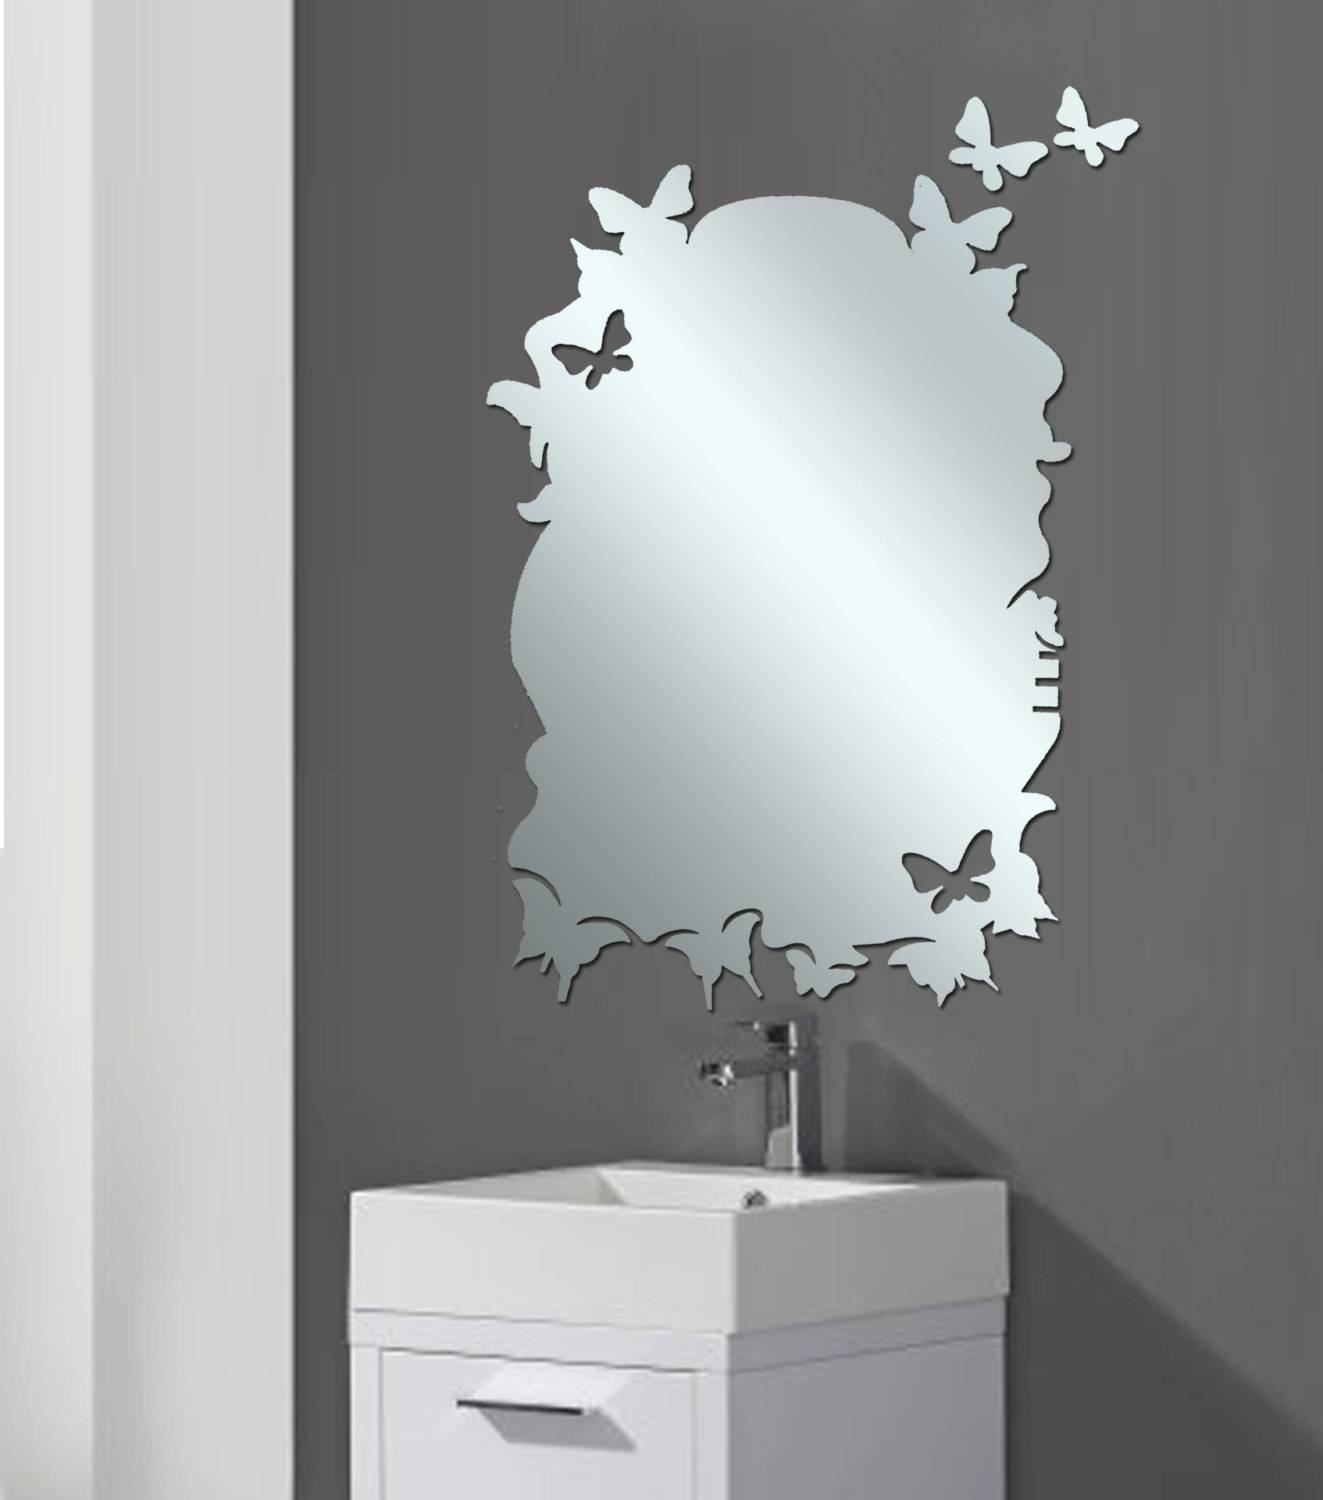 Modern Bathroom Mirrors Ideas — The Homy Design for Modern Mirrors (Image 16 of 25)